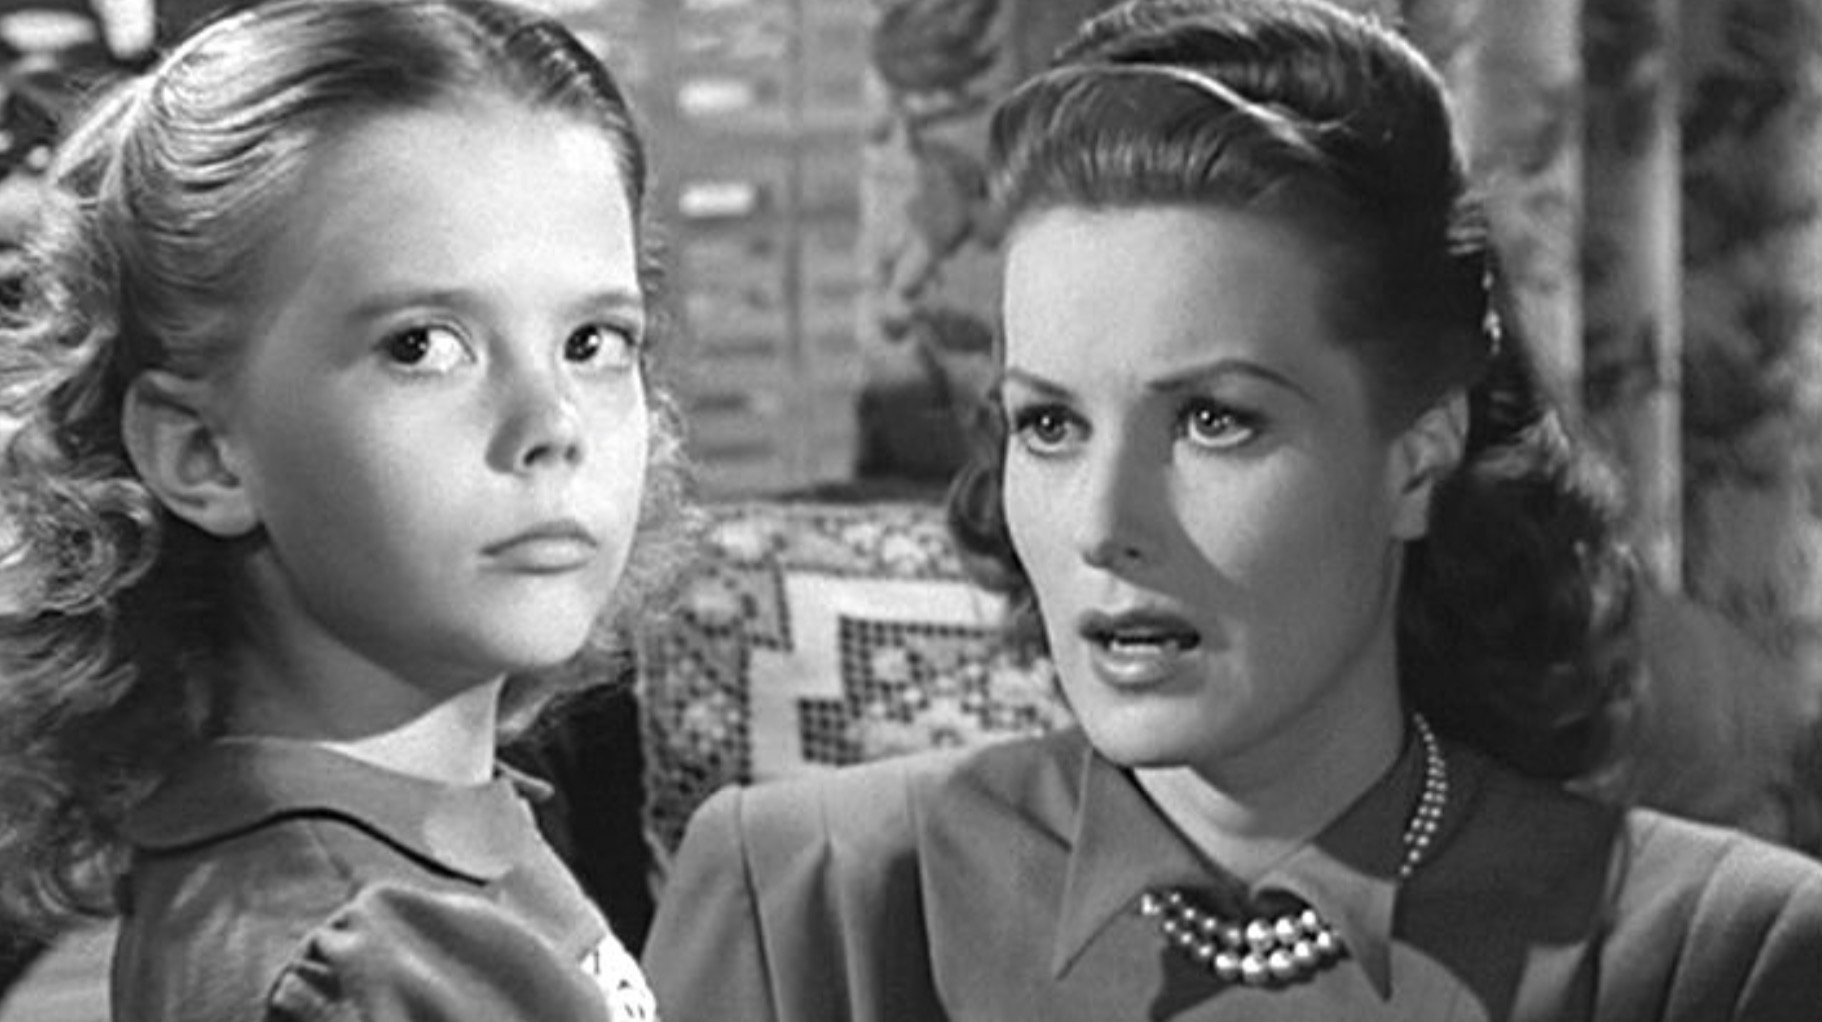 Miracle on 34th street, movies/tv